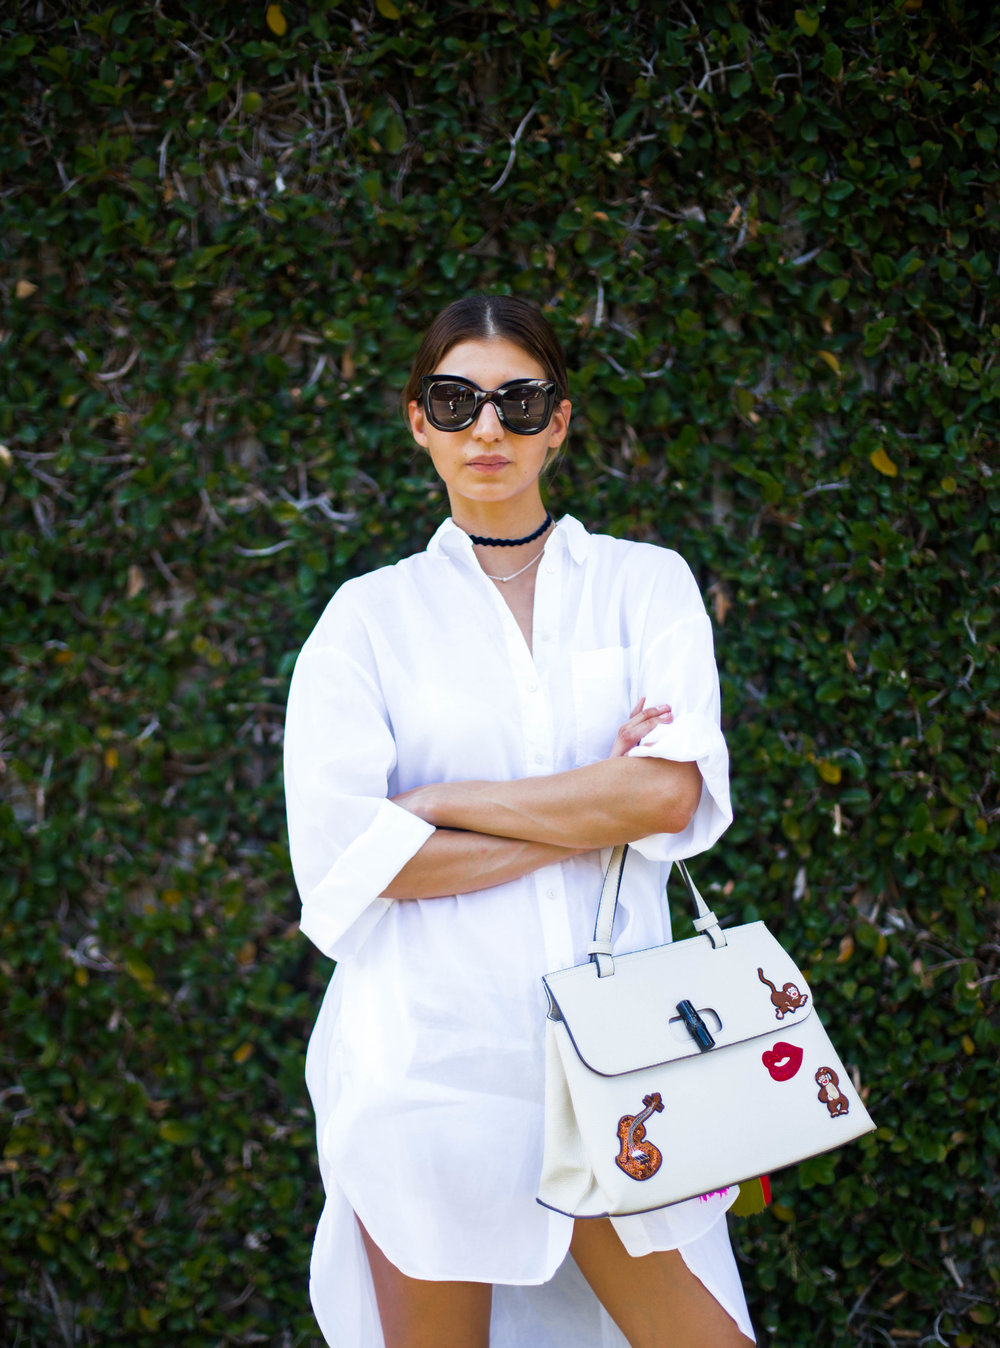 Shirt @Zara / Bag @THEB1RD / Sunglasses @Celine / Shoes  @Gucci